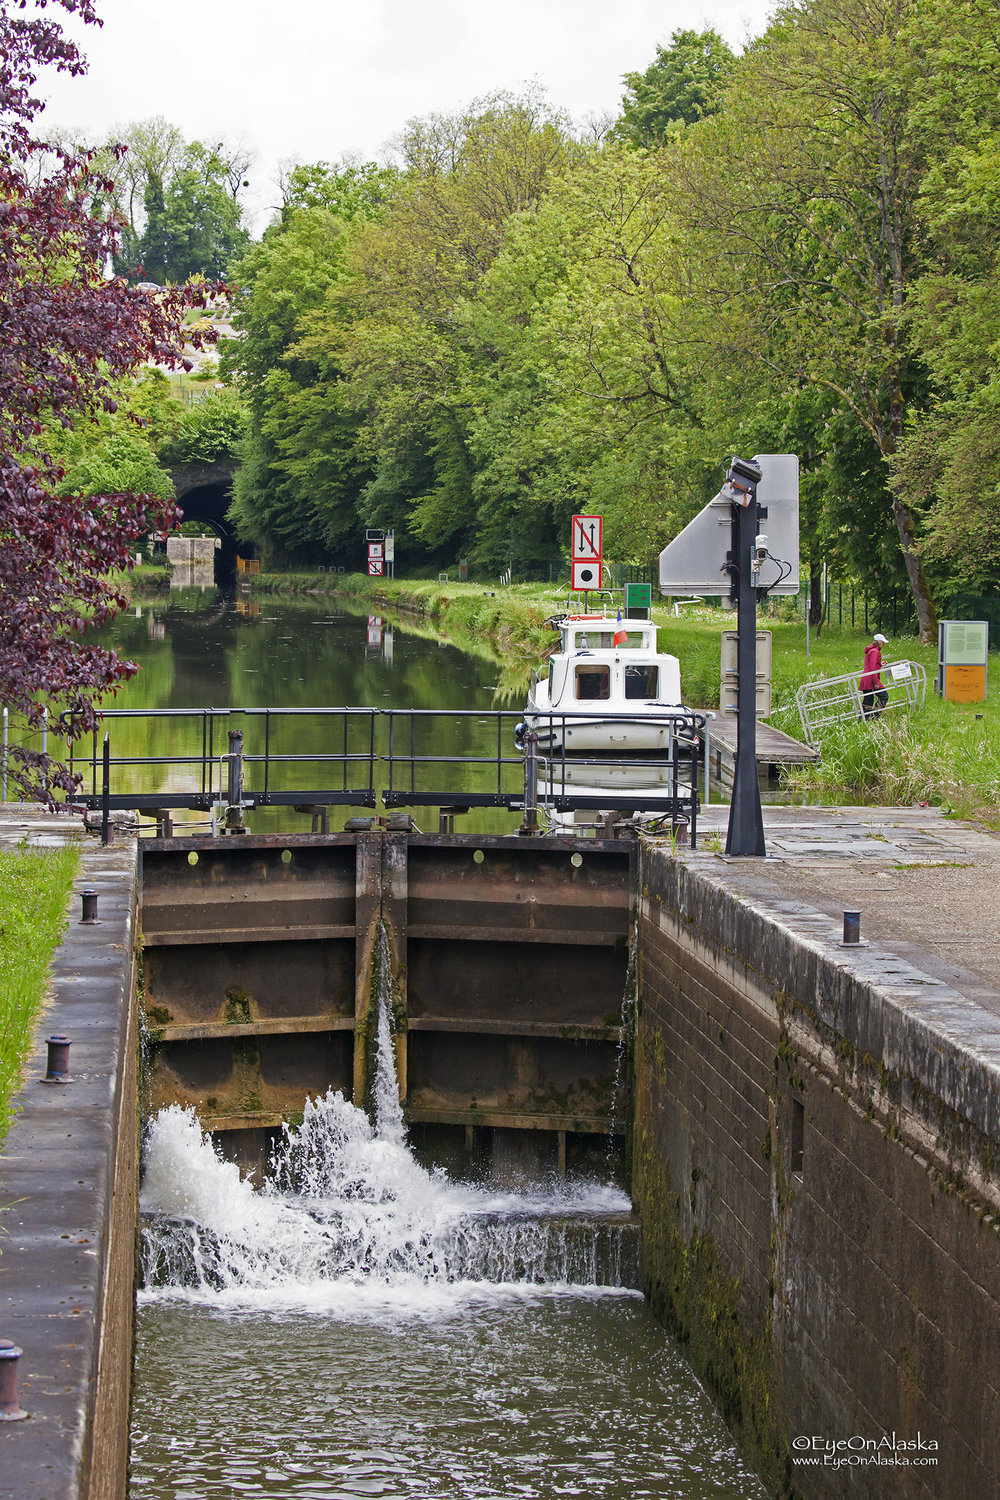 Moored just after going through this lock at Point Plaisance.  We had to wait for the lunch hour to be over before the next lock which we thought was one of the few with an honest human lock-keeper.  Sadly it has been automated like the rest of the locks.